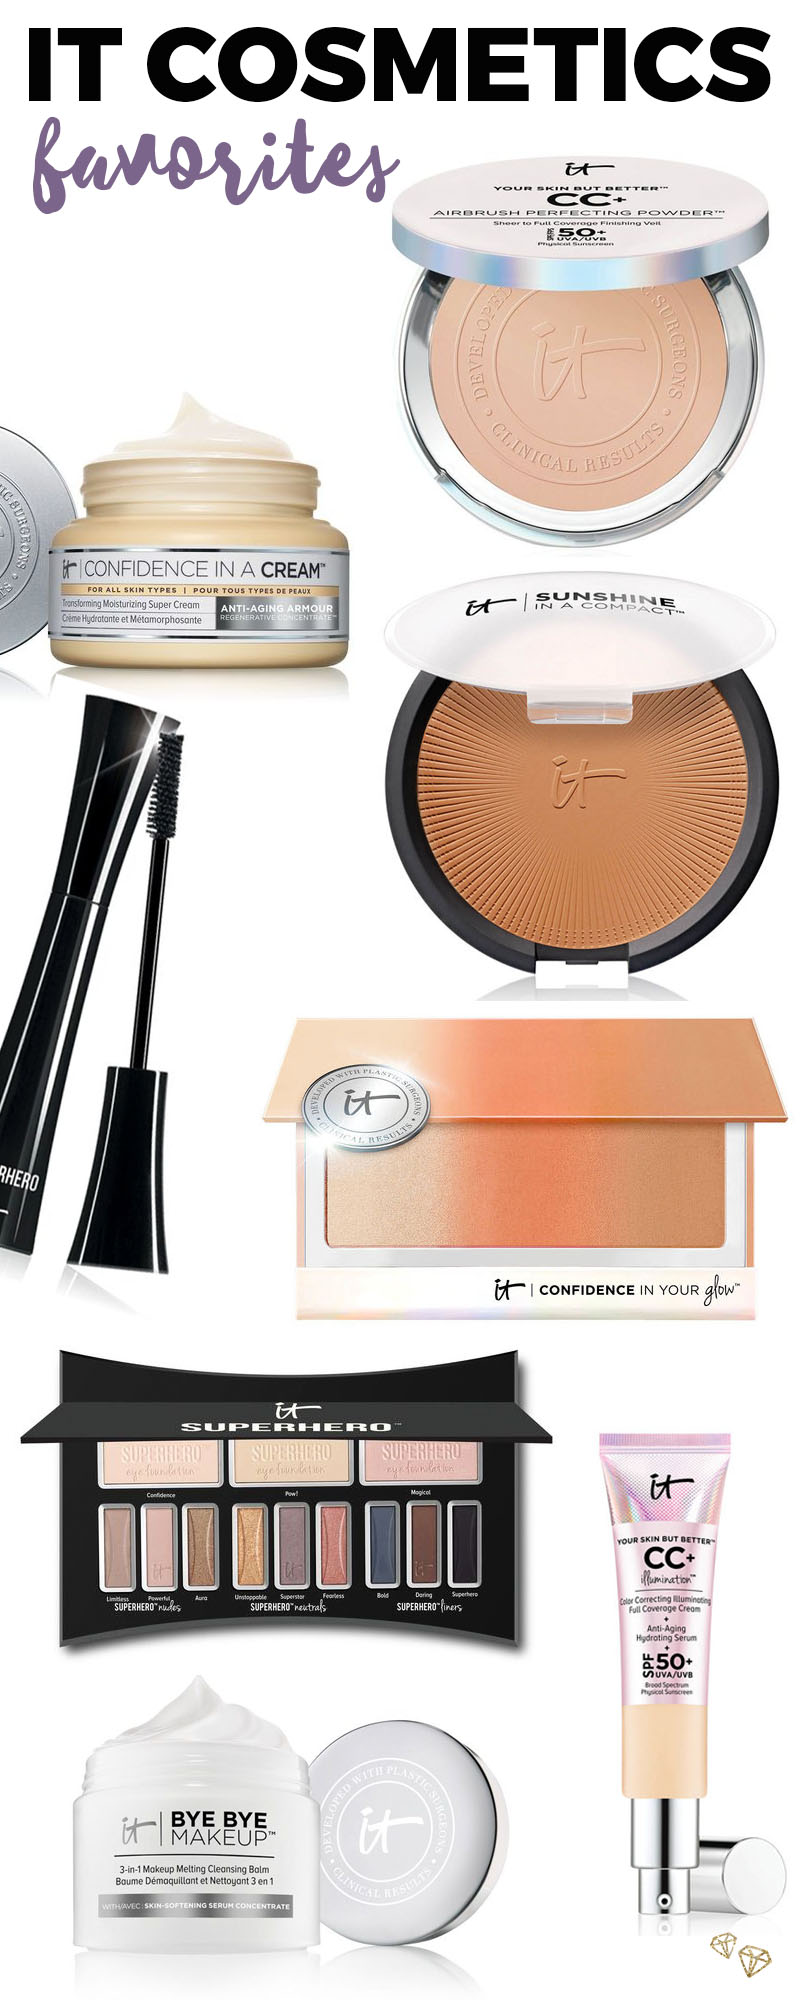 IT Cosmetics Favorites